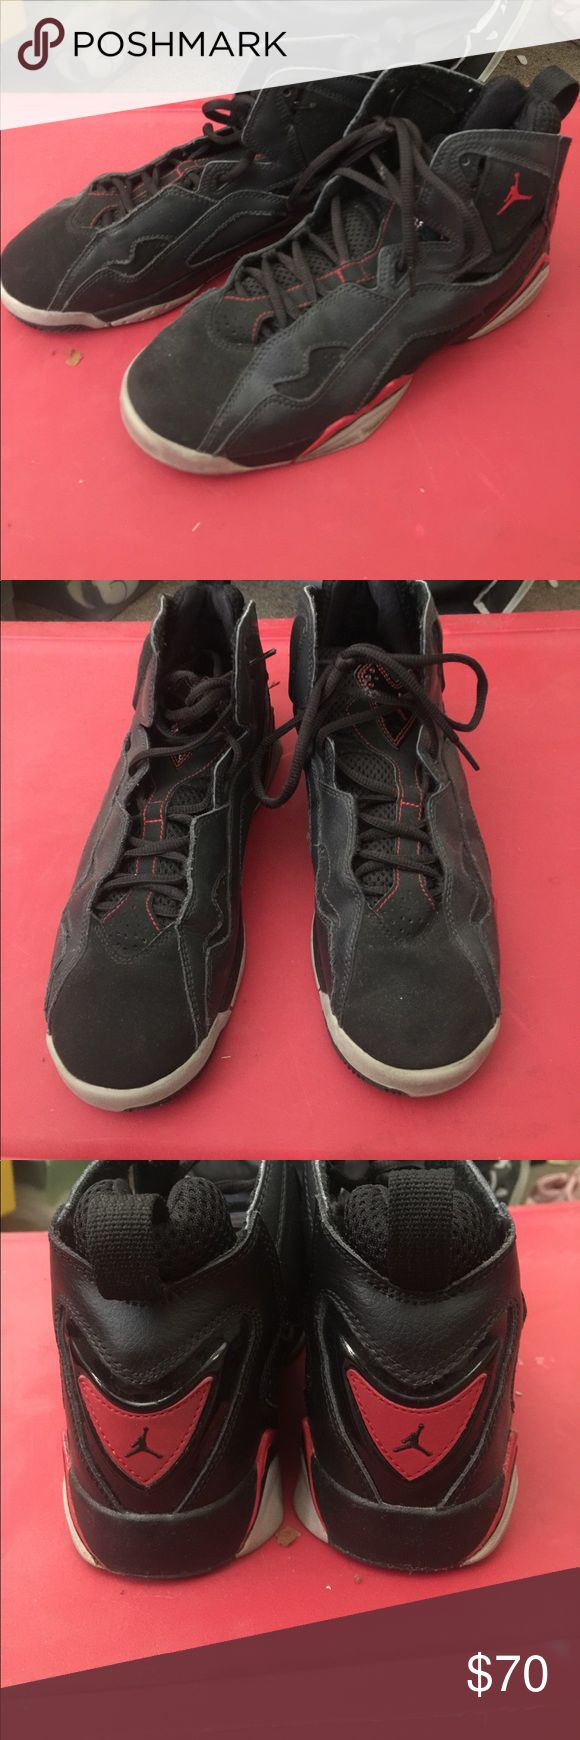 Authentic Jordan's sz 6 Youth Authentic Jordan's sz 6 Youth used but in great condition Jordan Shoes Athletic Shoes